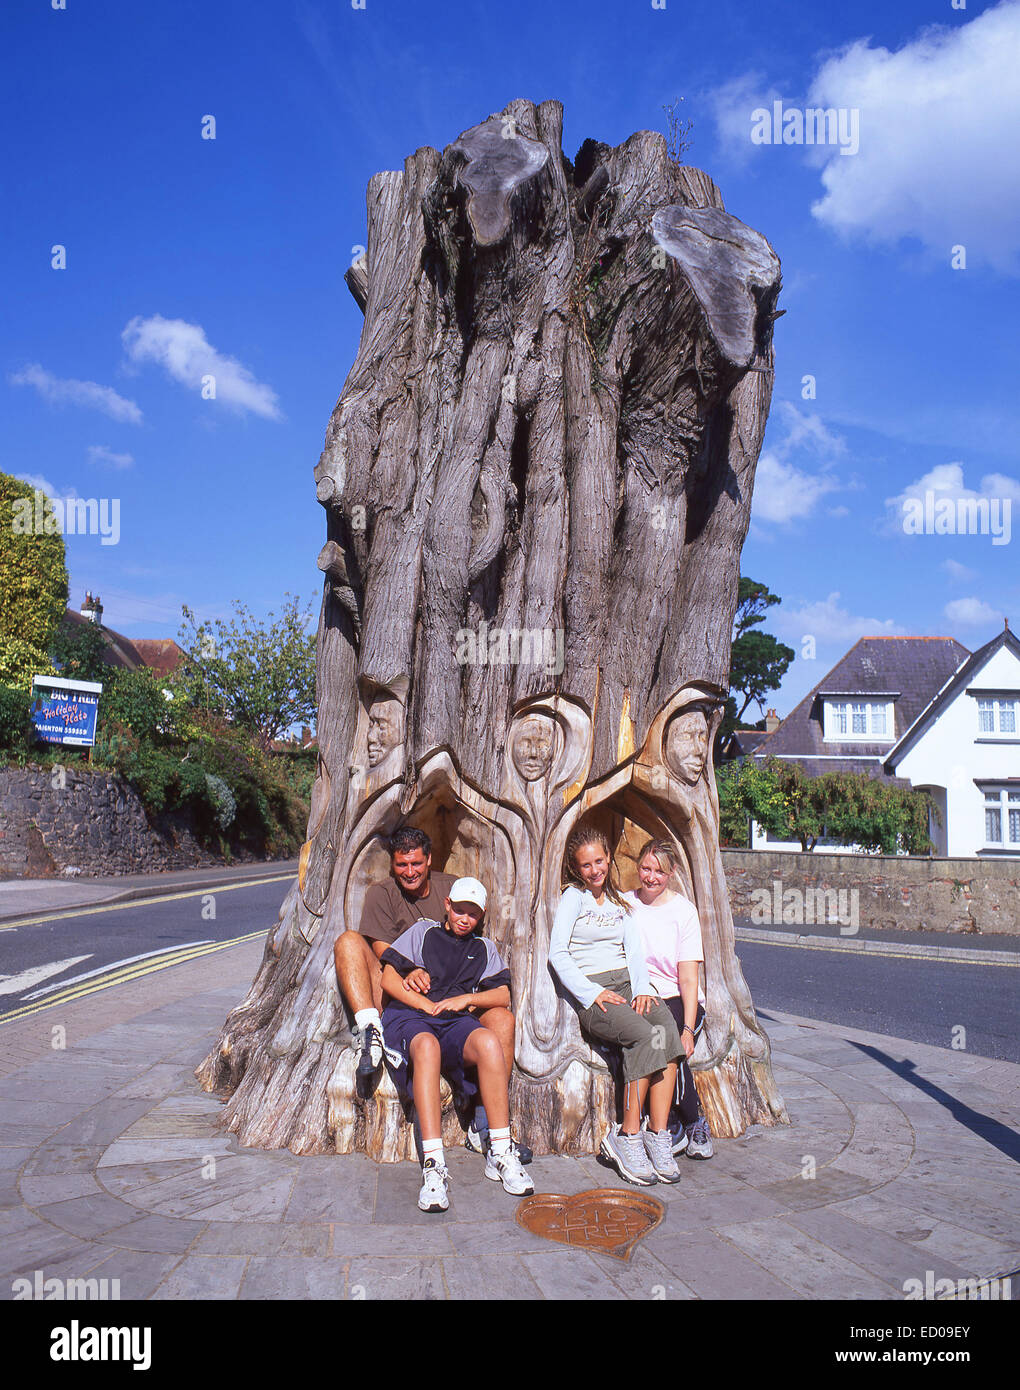 Family sitting in The Big Carved Tree, Paignton, Tor Bay, Devon, England, United Kingdom - Stock Image